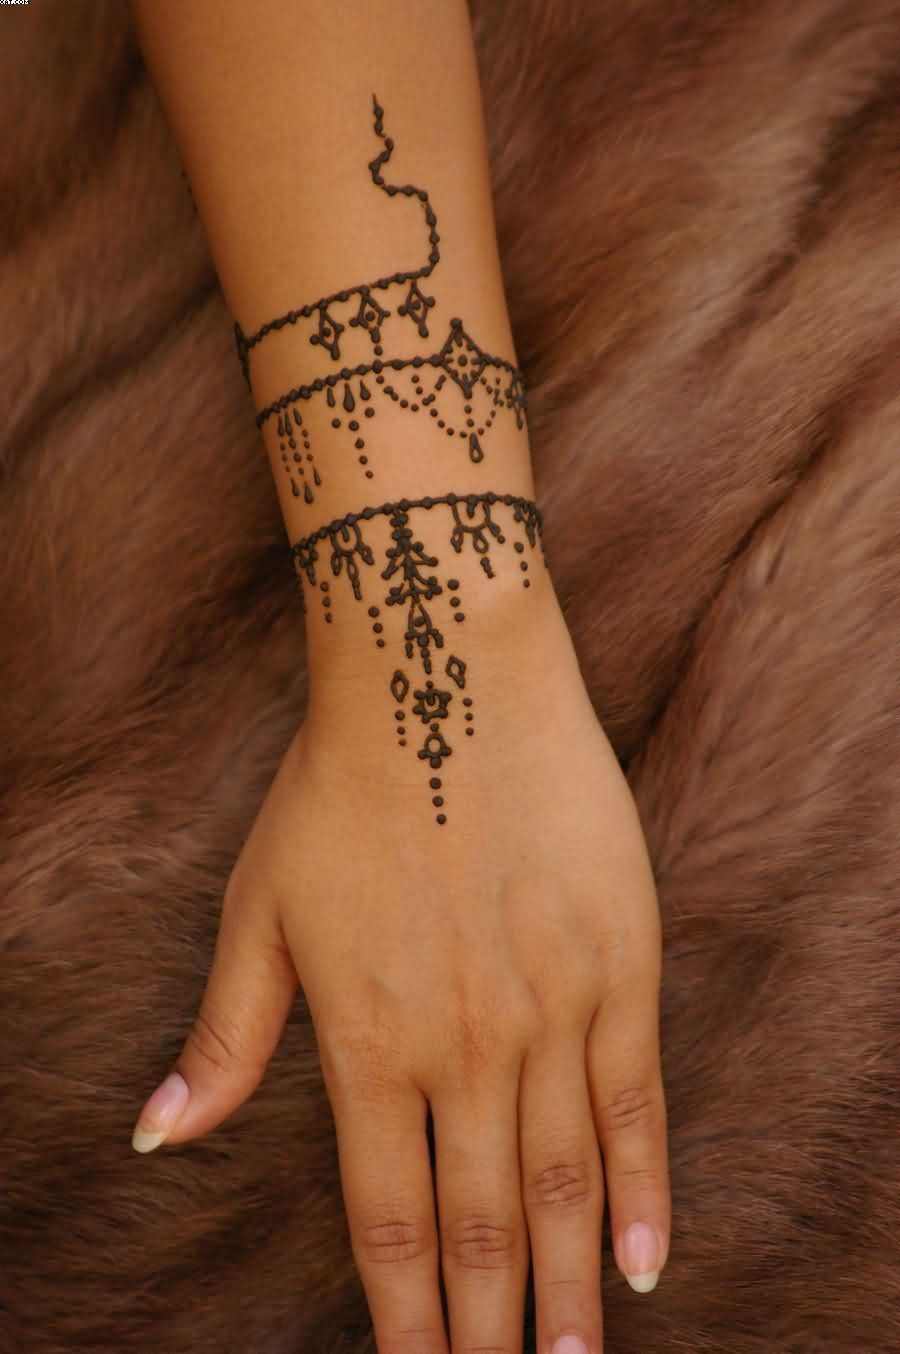 Wrist Henna Tattoo Pinterest Sheridanblasey: Antique Jewelry Inspired Henna Tattoo On Wrist